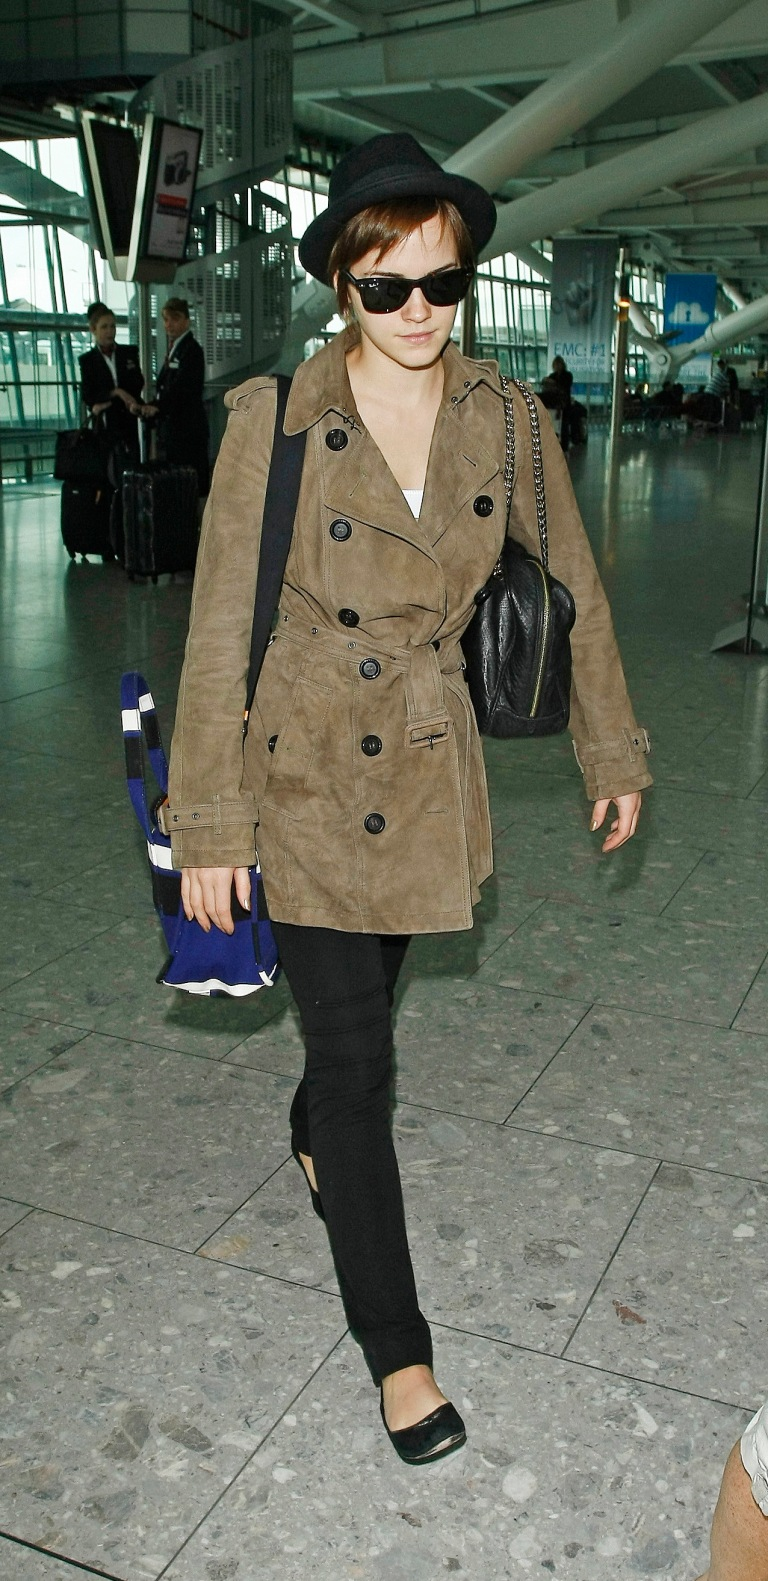 UK actress Emma Watson pictured at Heathrow Airport, leaving London, England, UK. Pictured: Emma Watson Ref: SPL295576 080711 Picture by: Colin MacFarlane / Splash News Splash News and Pictures Los Angeles:310-821-2666 New York: 212-619-2666 London: 870-934-2666 photodesk@splashnews.com